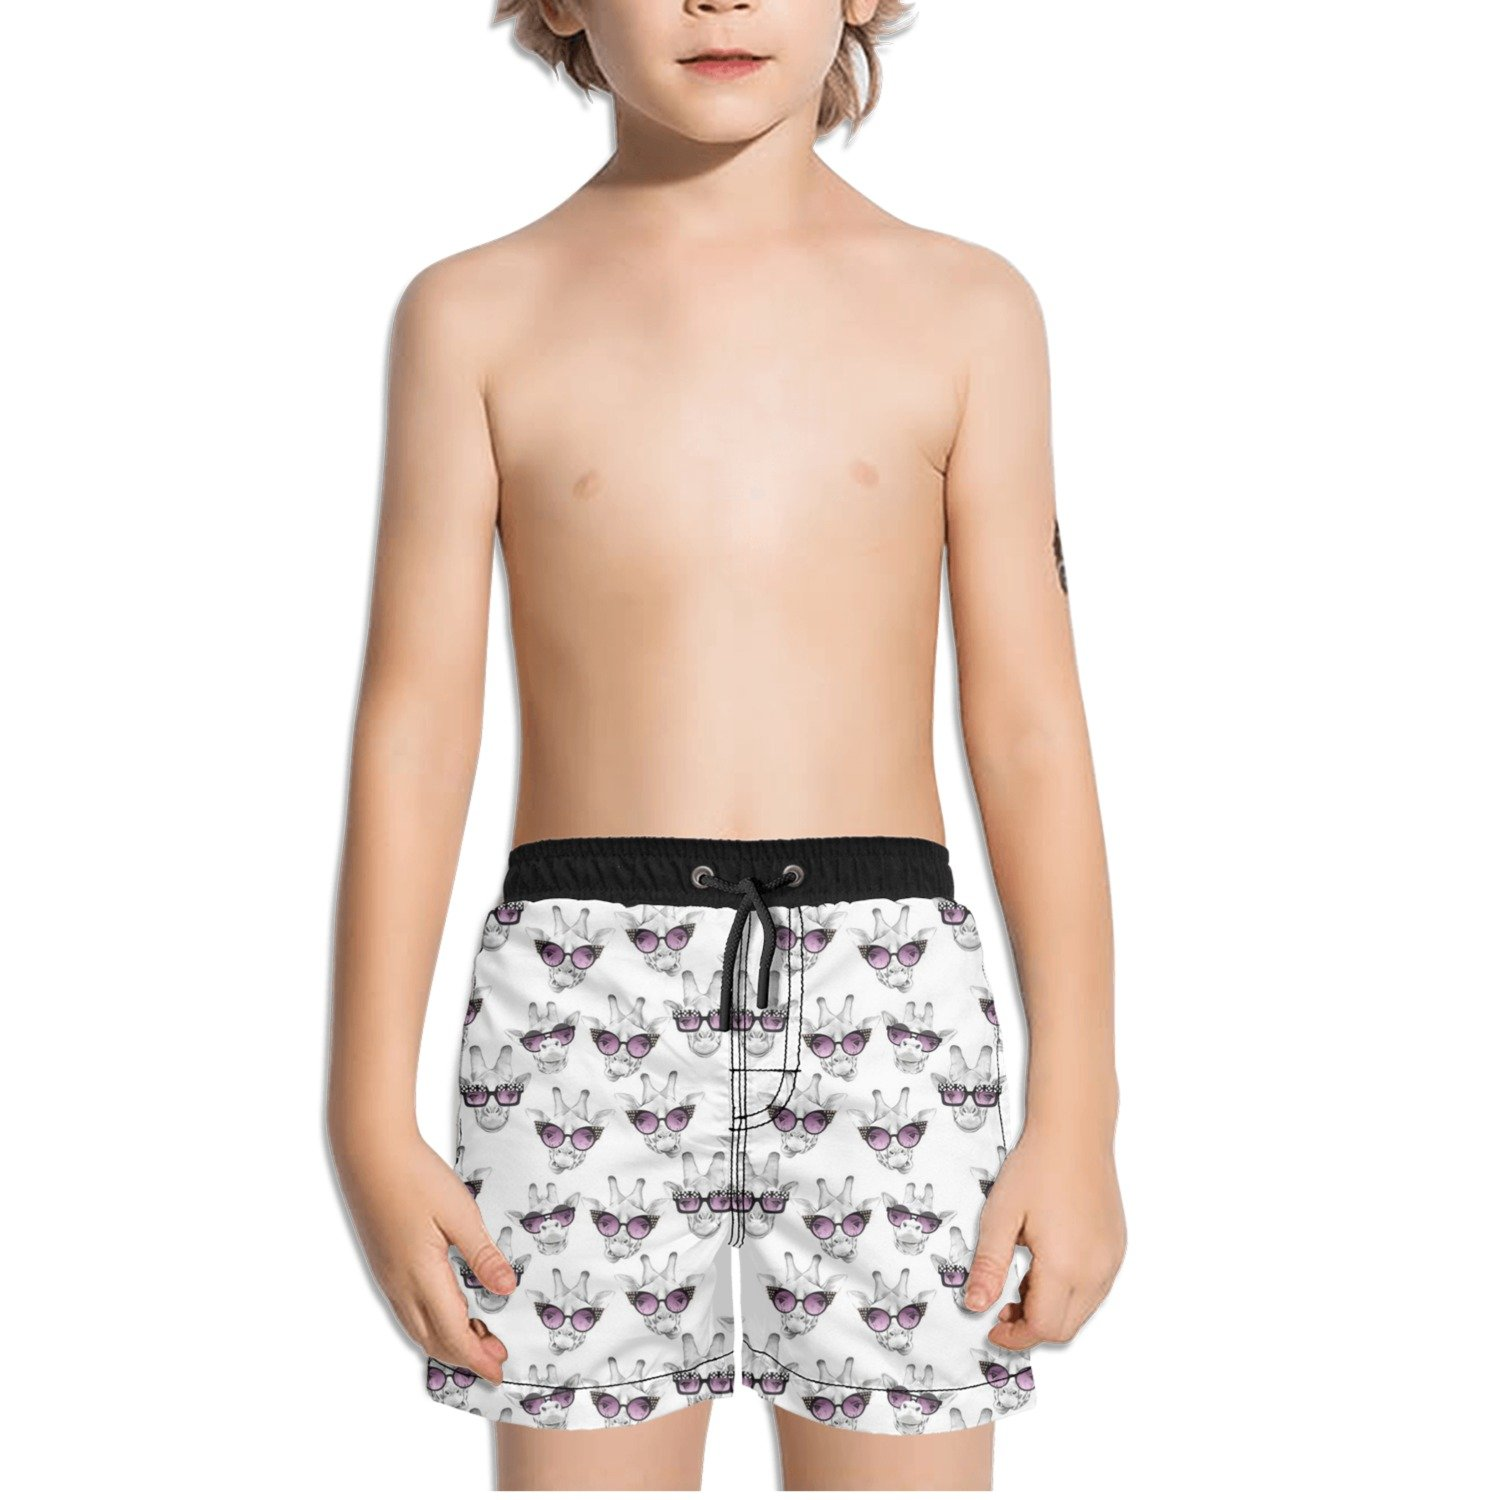 FullBo Cool Hispter Giraffe Sunglasses Little Boy's Short Swim Trunks Quick Dry Beach Shorts